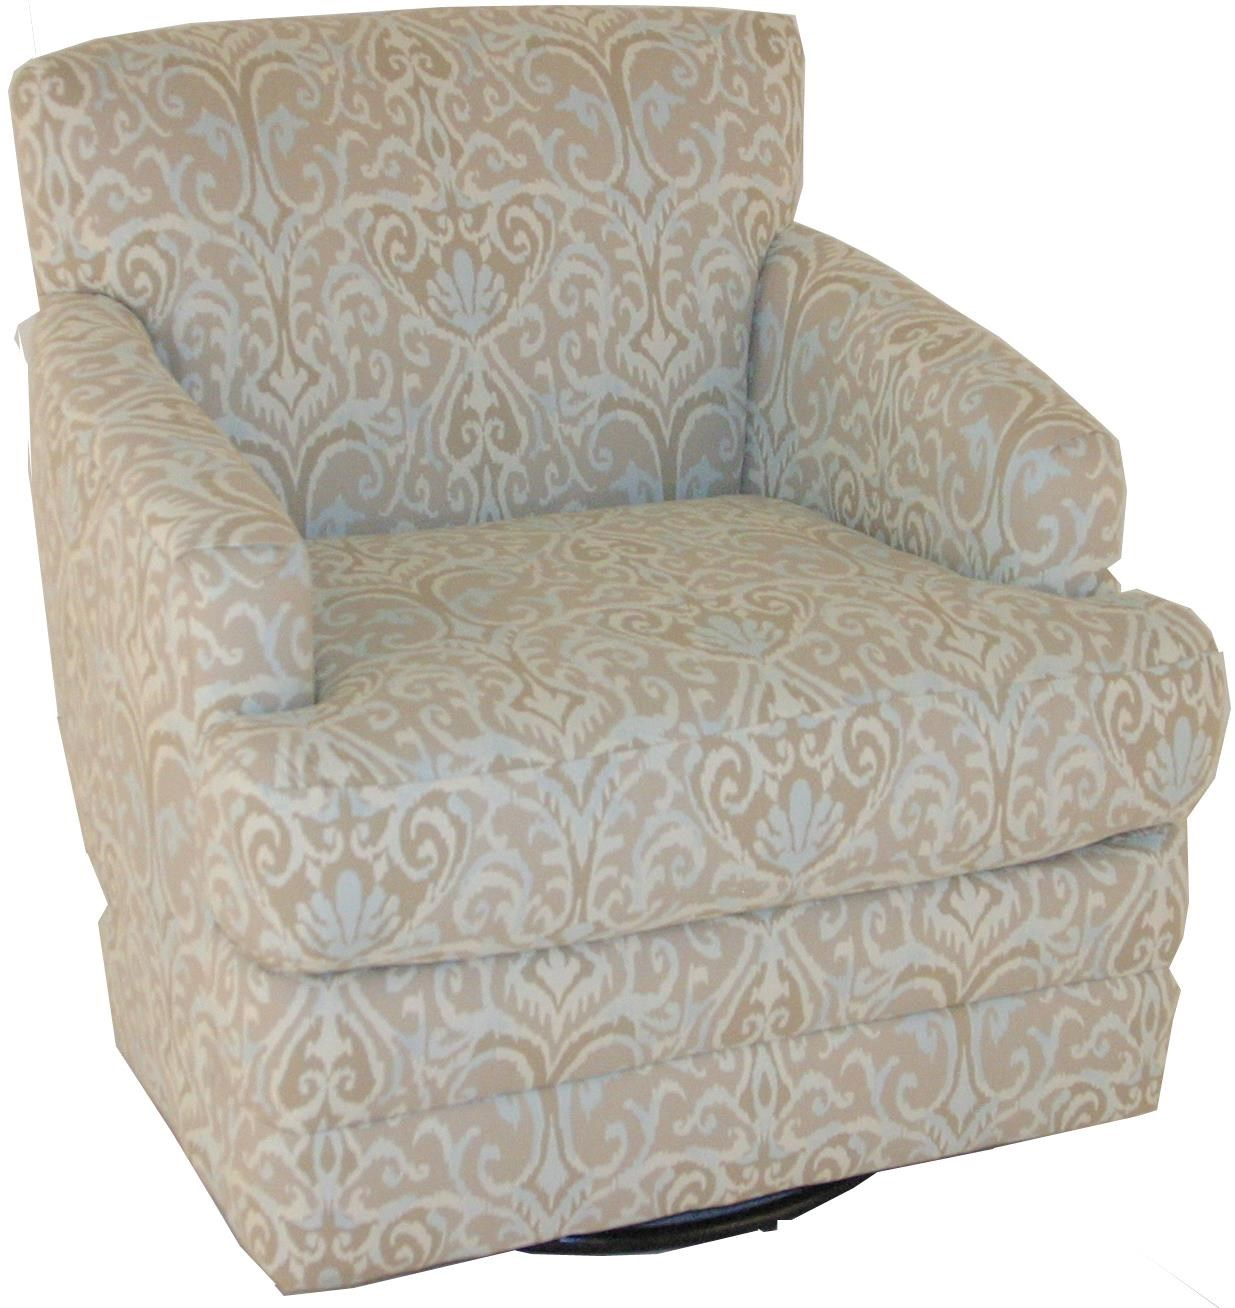 Rocking Accent Chairs Chairs America Accent Chairs And Ottomans 1424sw Transitional